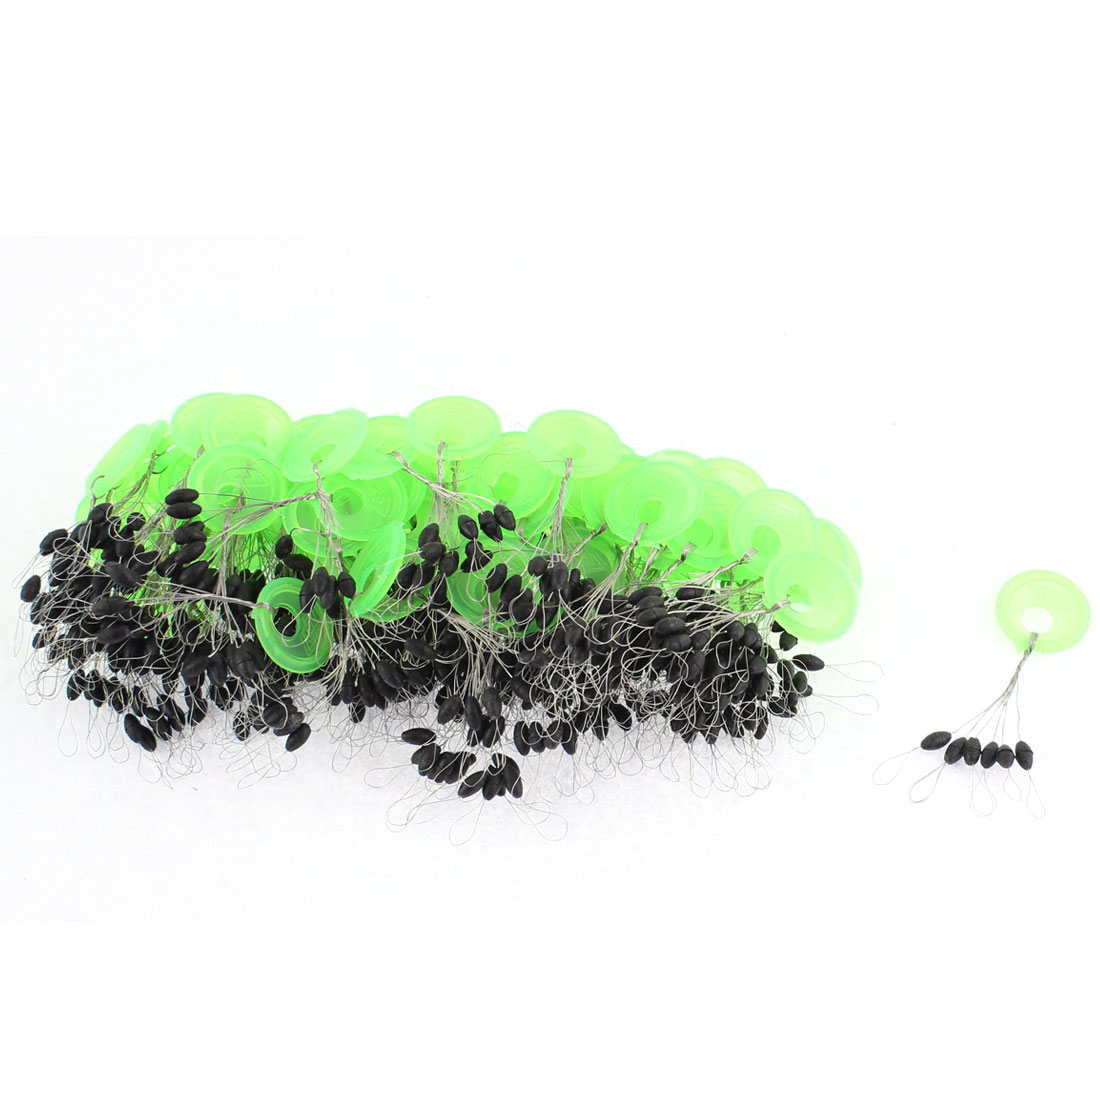 Unique Bargains 6 in 1 Design Round Fishing Floaters Bobbers 5mm Long 50 Pcs by Unique-Bargains